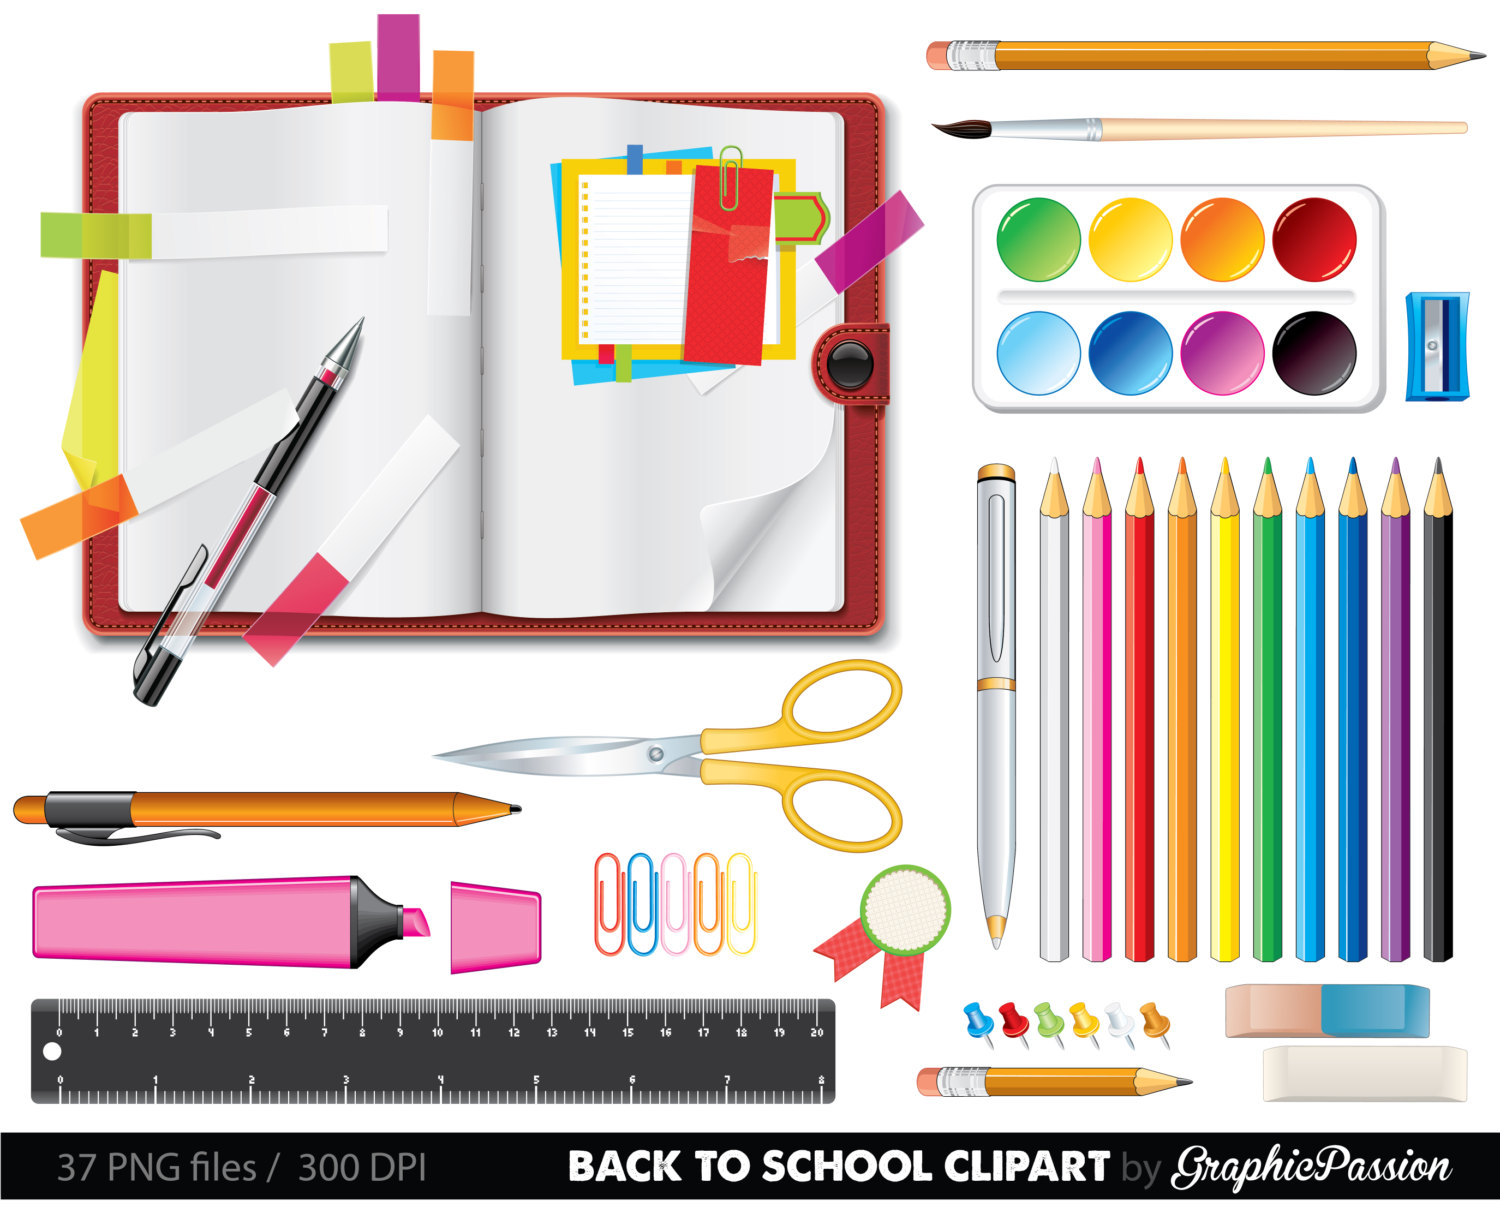 Stationery clipart images png stock Free Stationary Cliparts, Download Free Clip Art, Free Clip ... png stock